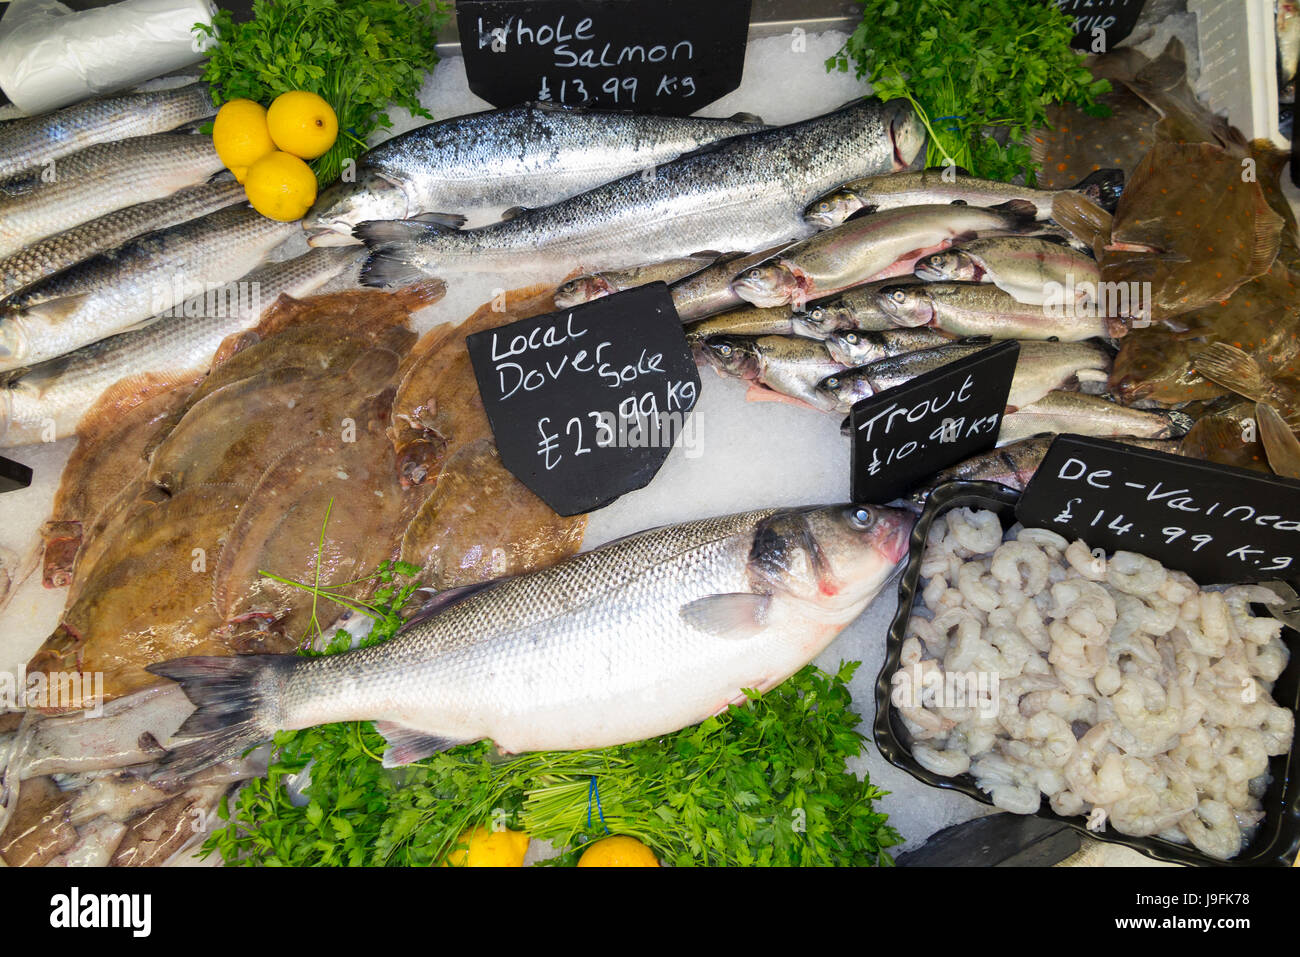 Selection of wet fish / mackerel / salmon / shrimps / shrimps, all freshly caught landed, for sale at fish stall - Stock Image